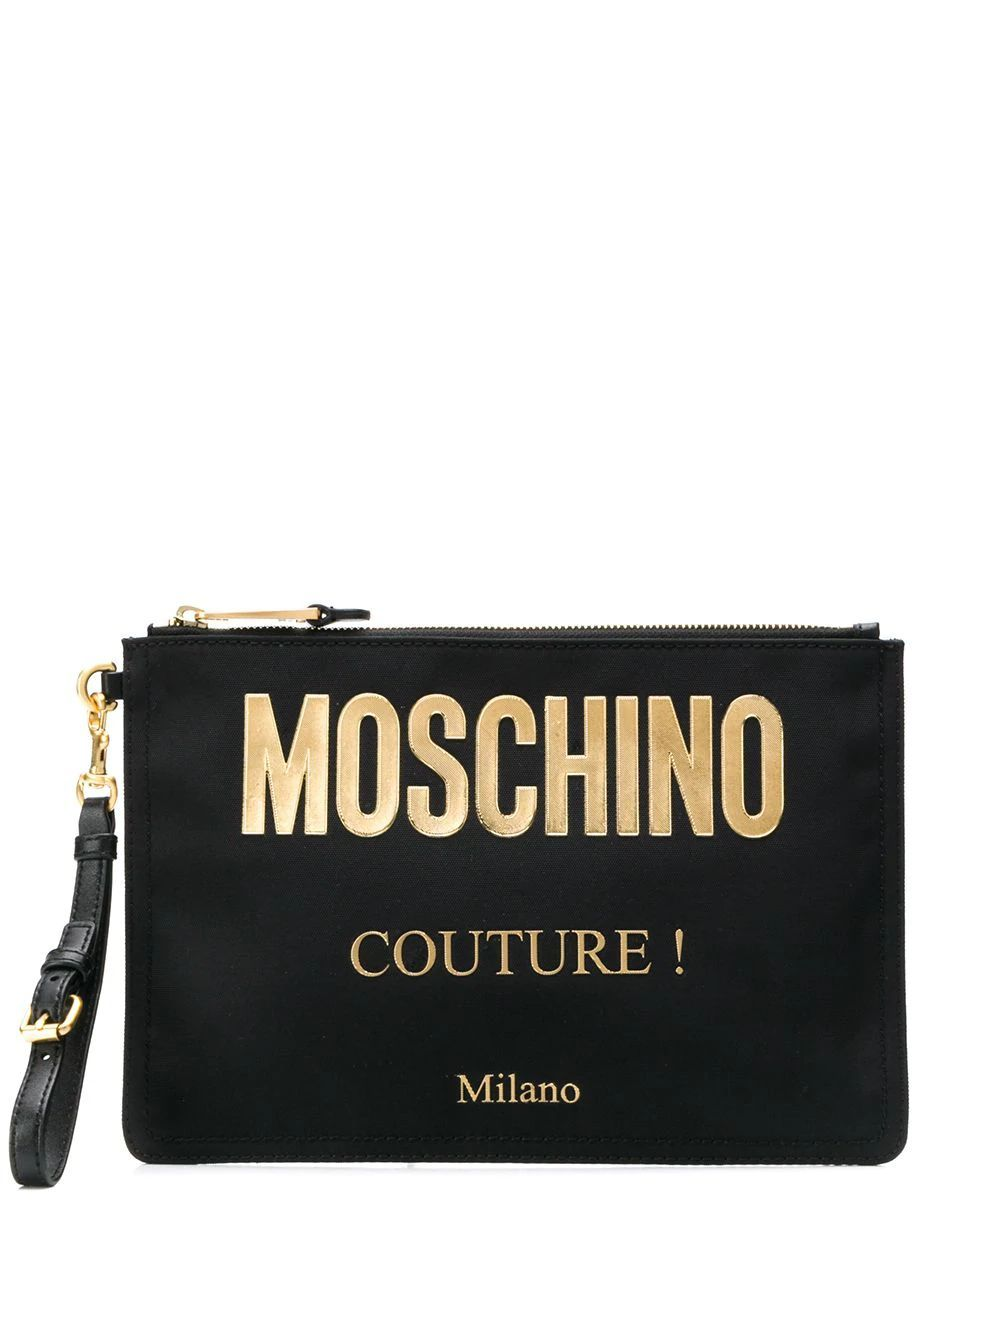 MOSCHINO WOMEN'S B840782051555 BLACK POLYESTER POUCH